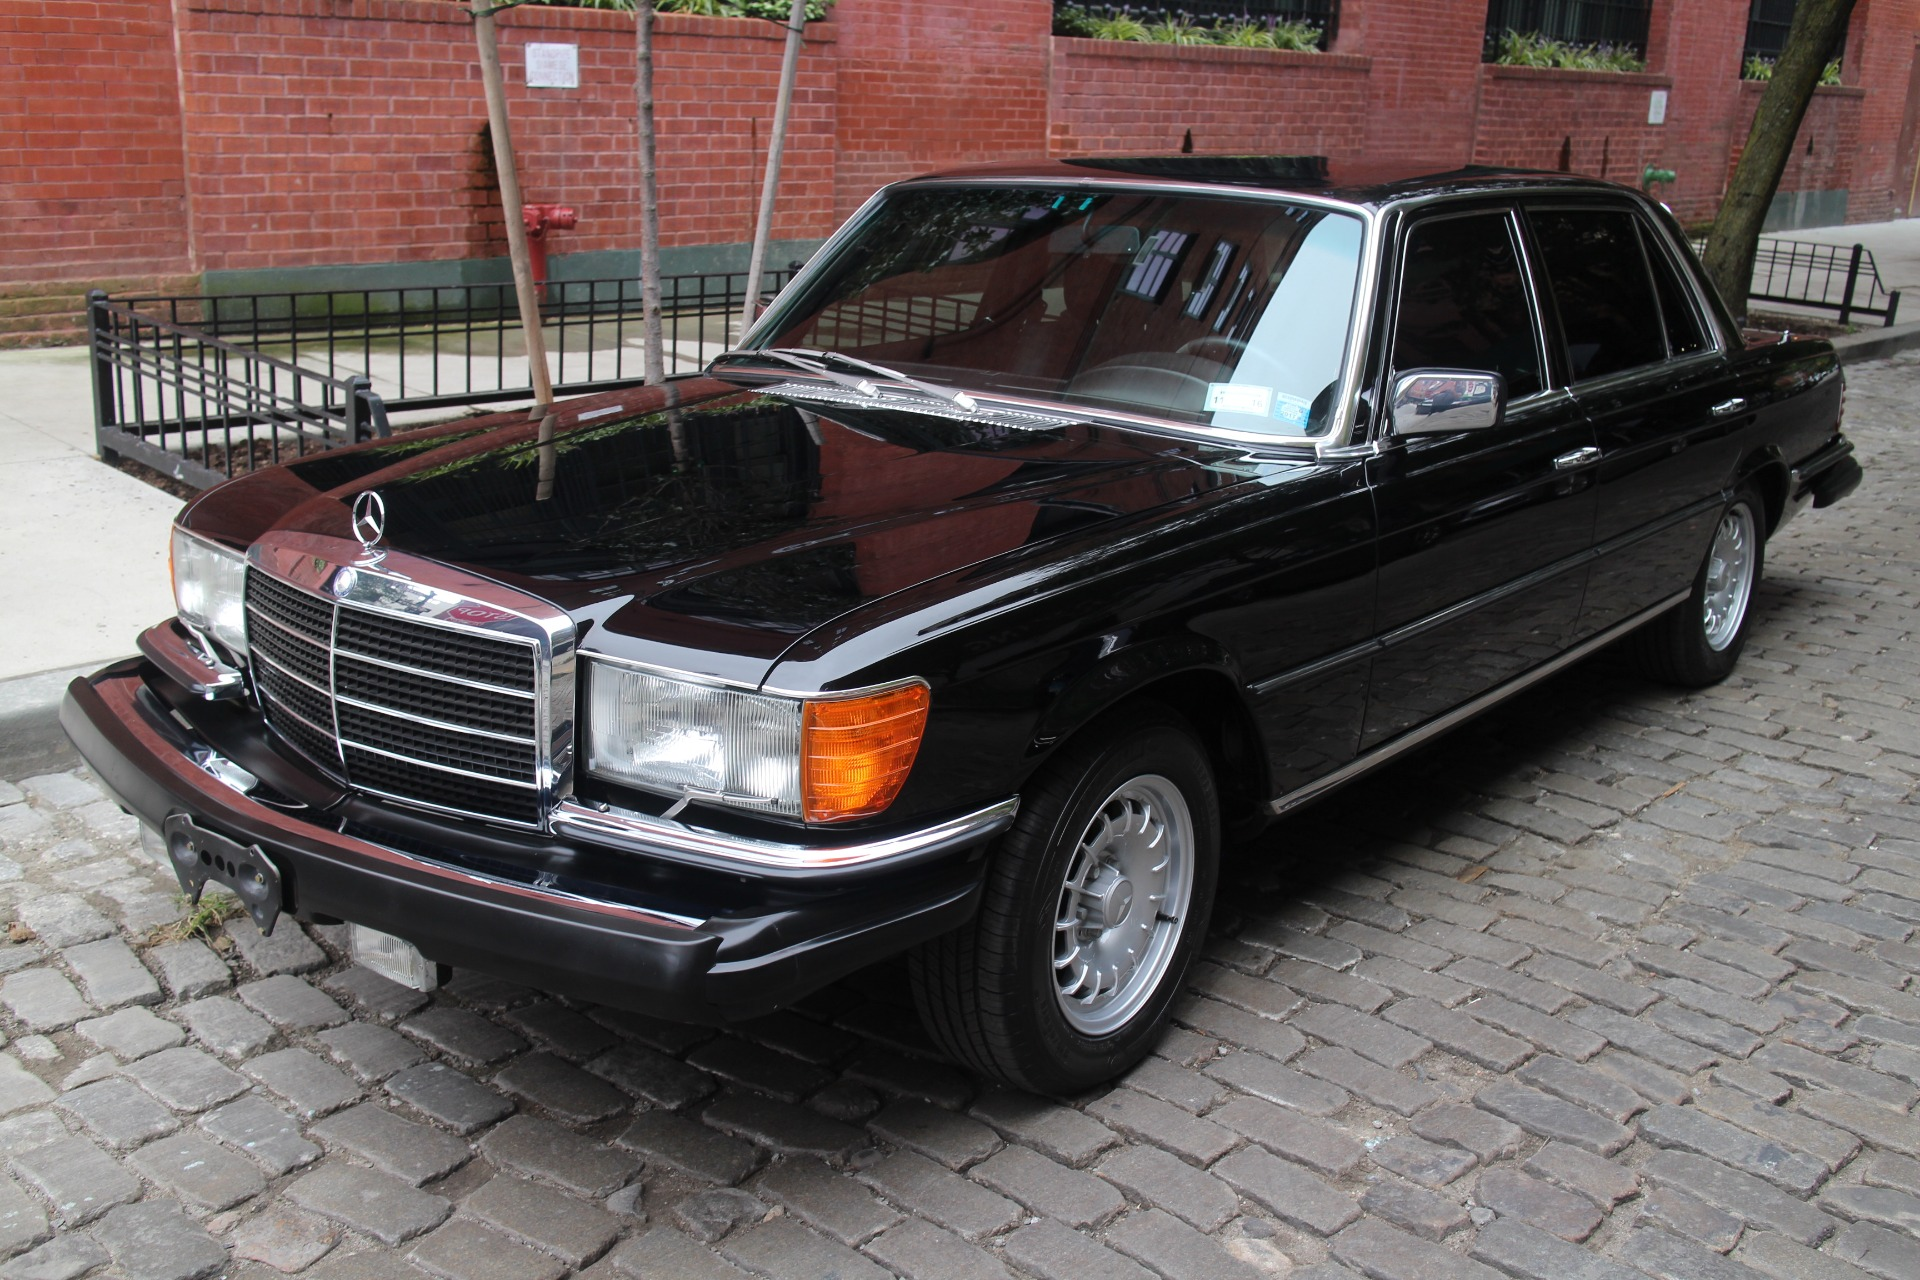 1979 Mercedes-Benz 450SEL 6.9 Stock # 786 for sale near ...